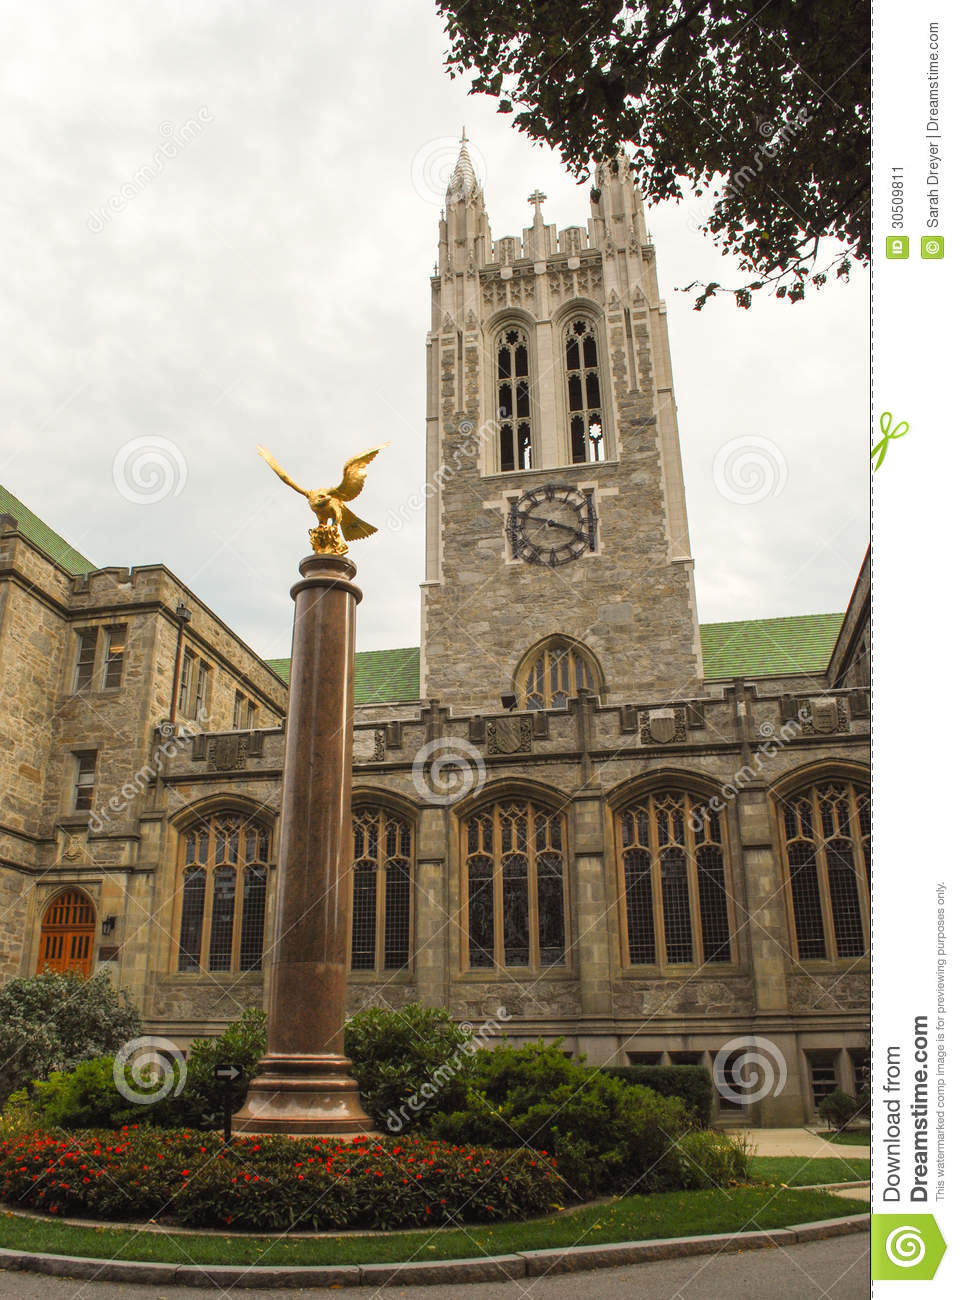 gasson hall boston college stock image image of